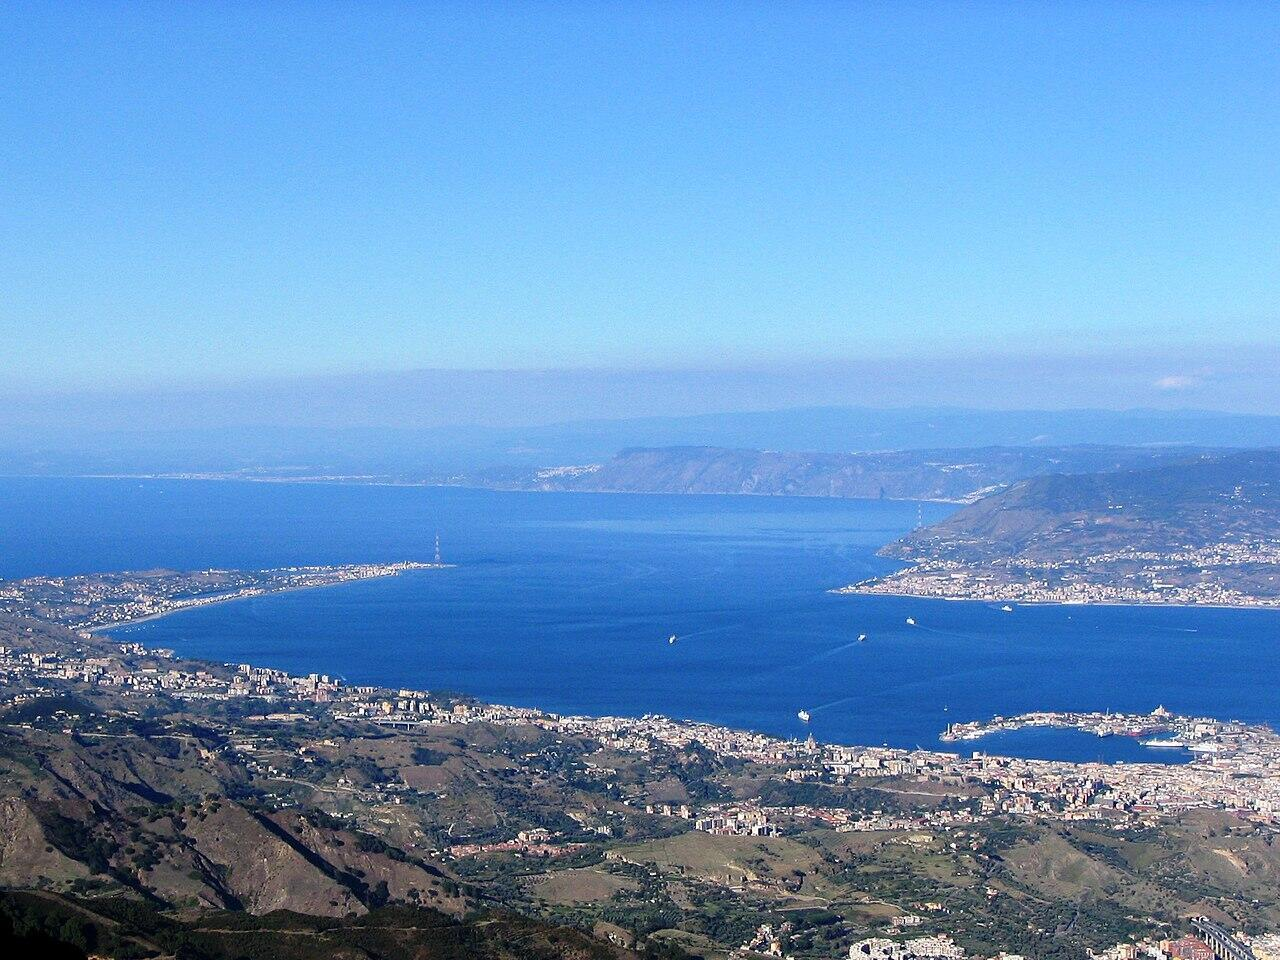 Strait_of_Messina_from_Dinnammare